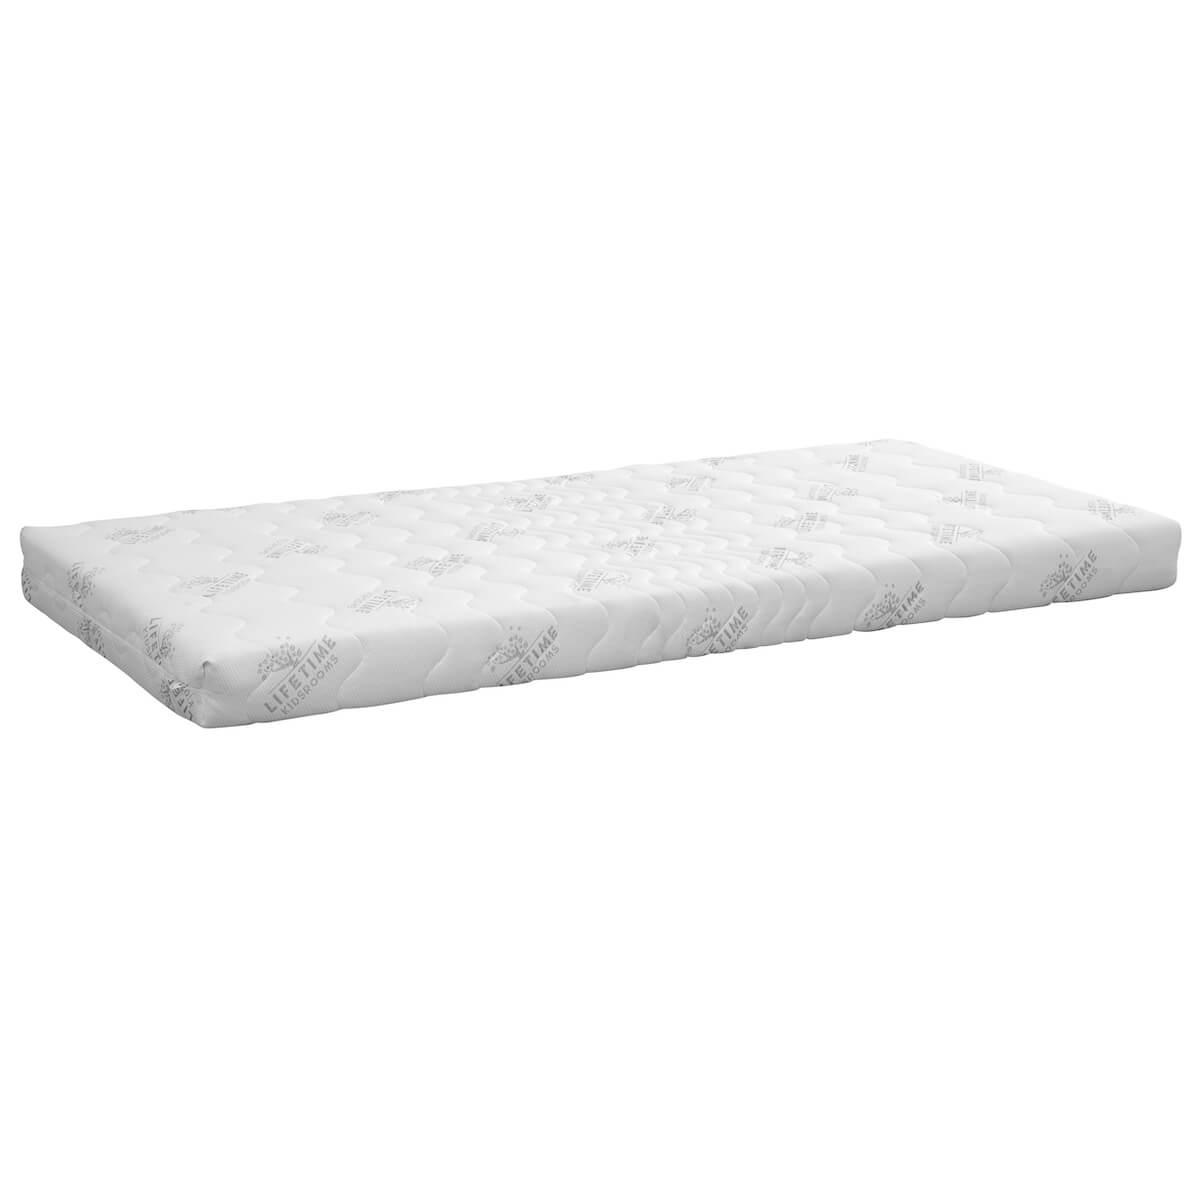 Matelas mousse 90x200cm 5 zones CONFORT Lifetime